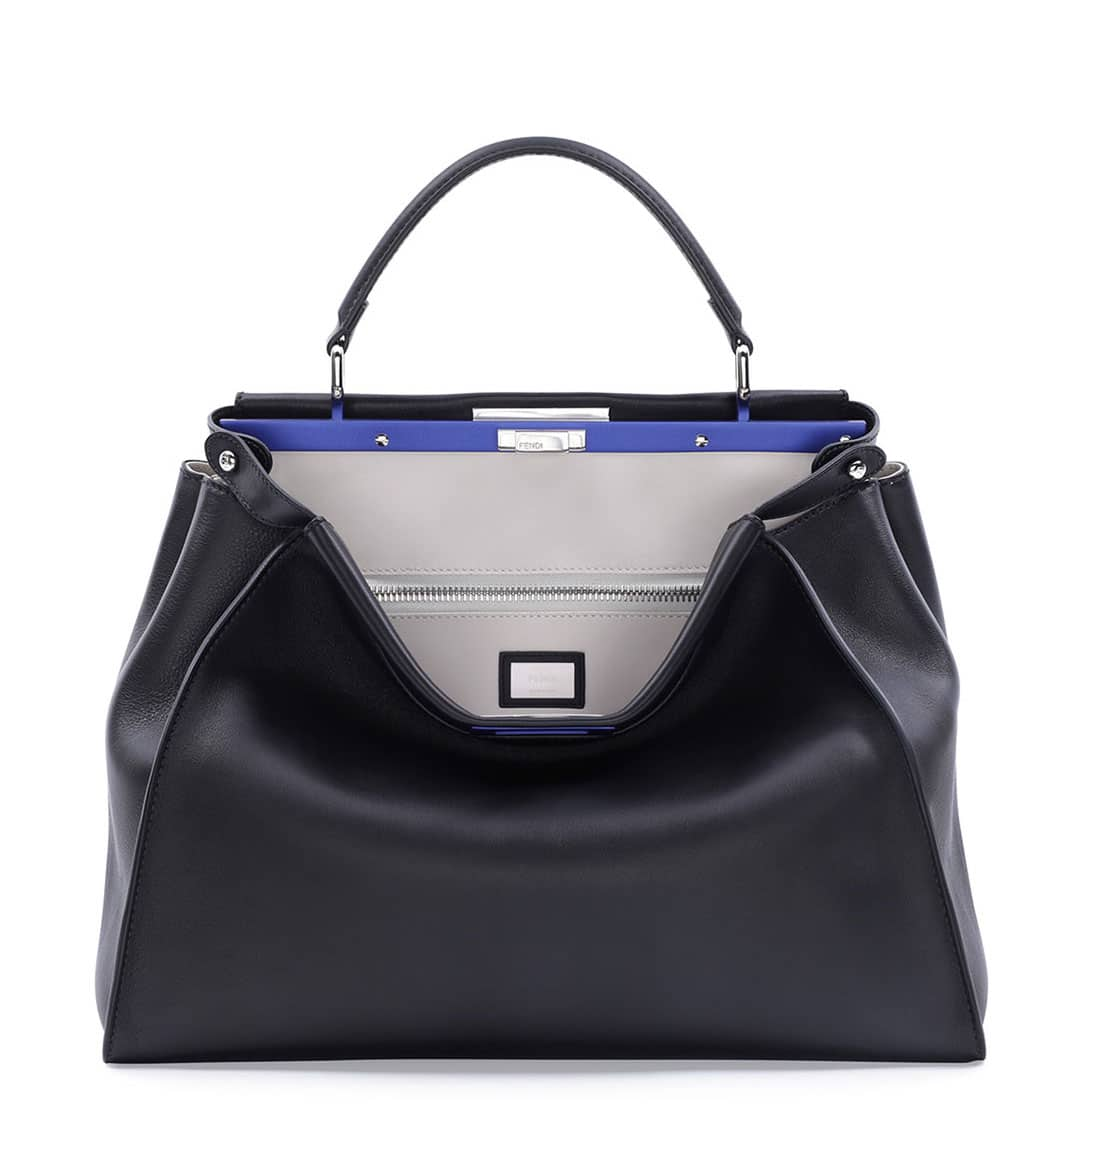 Fendi spring summer 2015 runway bag collection spotted fashion - Fendi Black White Peekaboo Large Bag